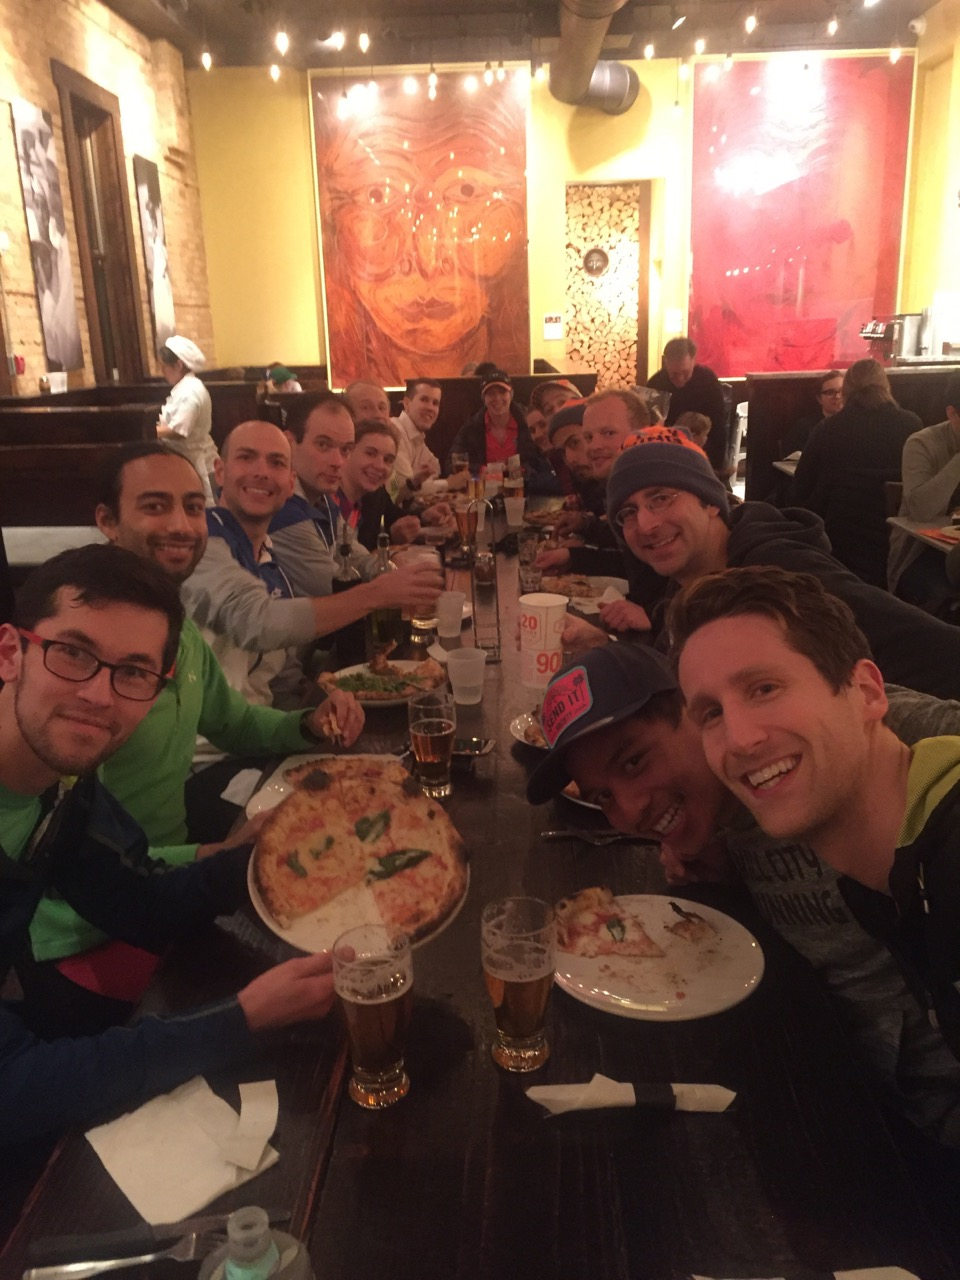 Mill City runners at Punch Pizza